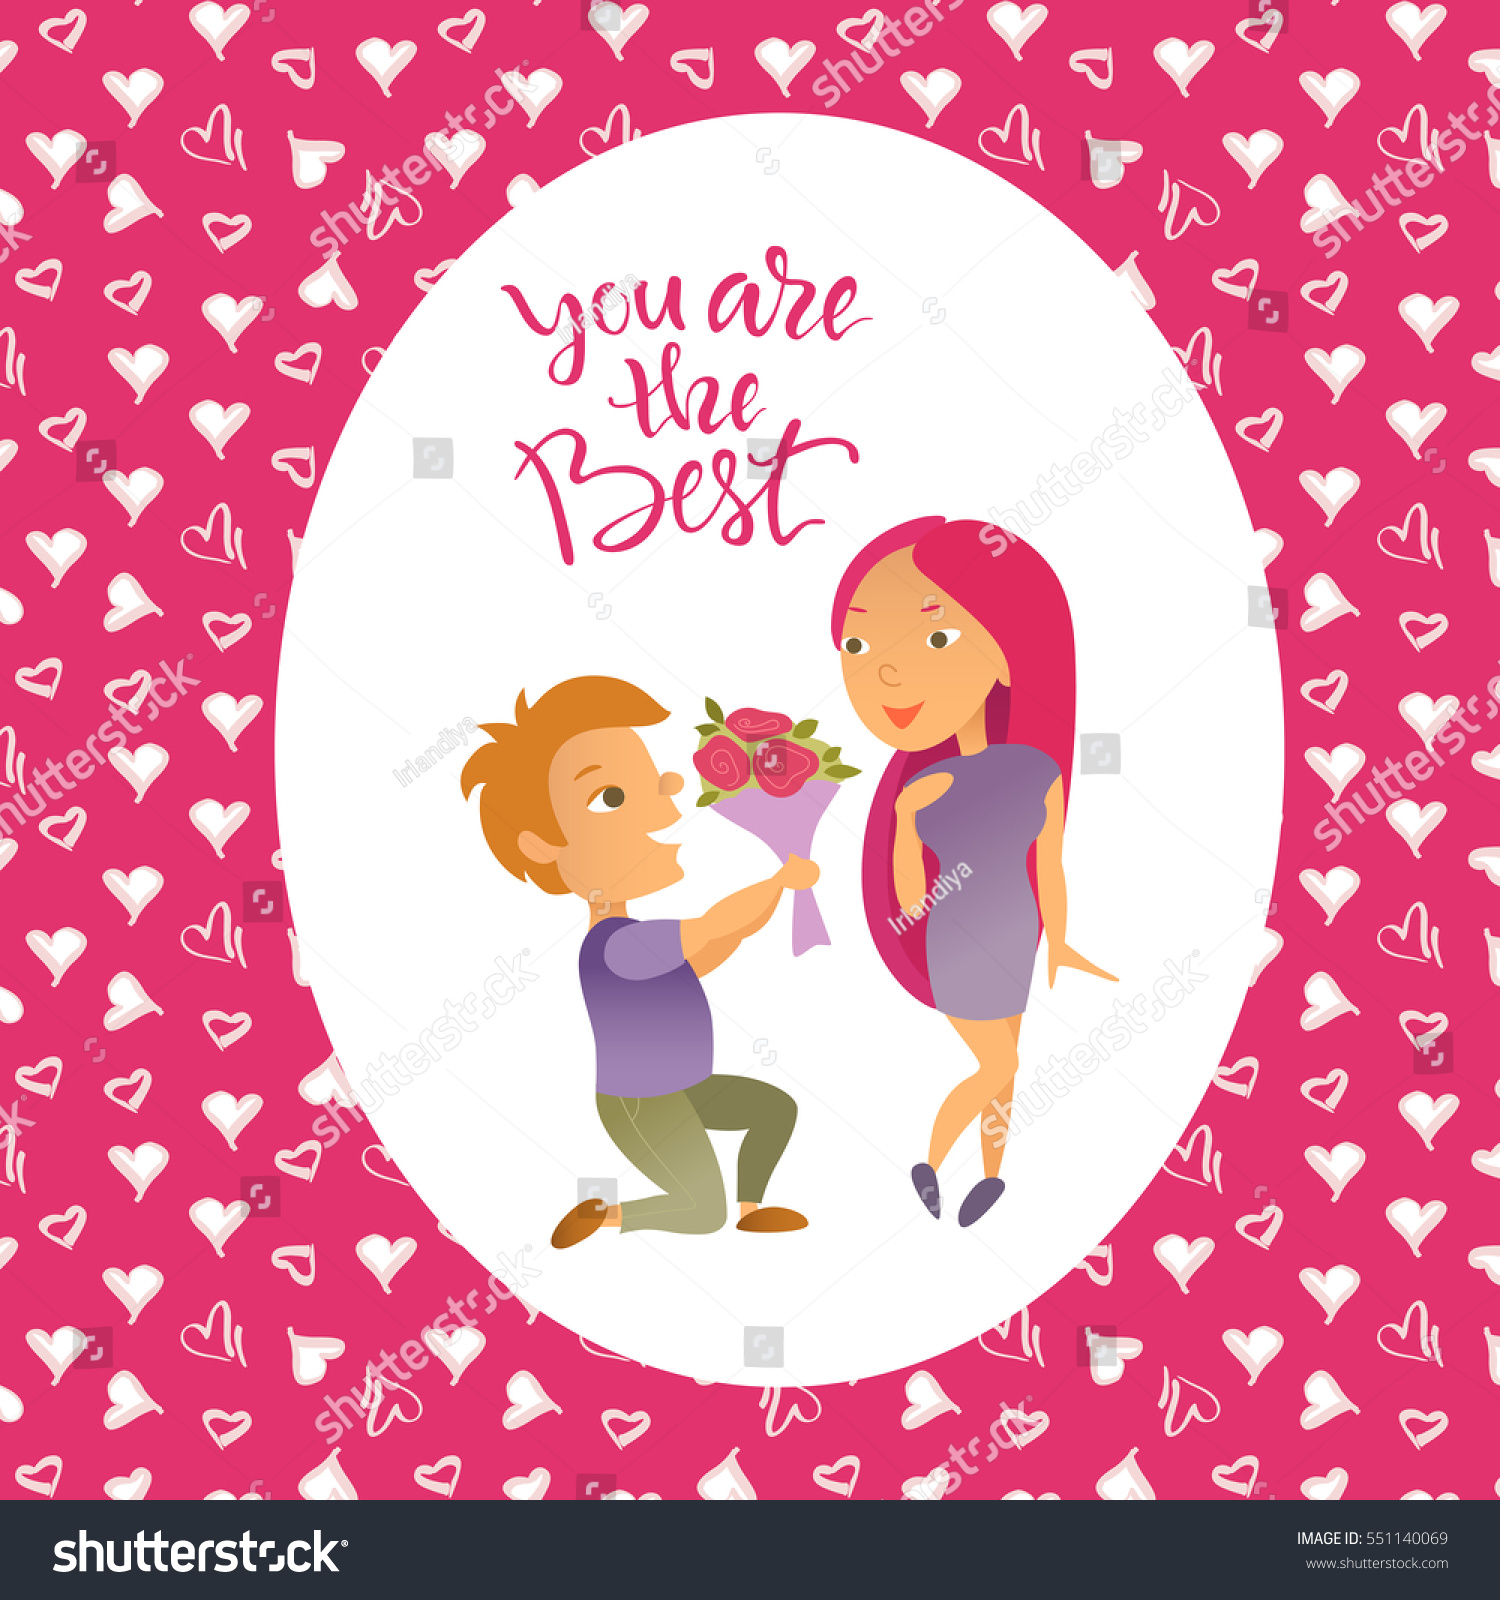 Vector illustration valentines day greeting card stock vector vector illustration valentines day greeting card cartoon characters lovers man and woman kristyandbryce Choice Image